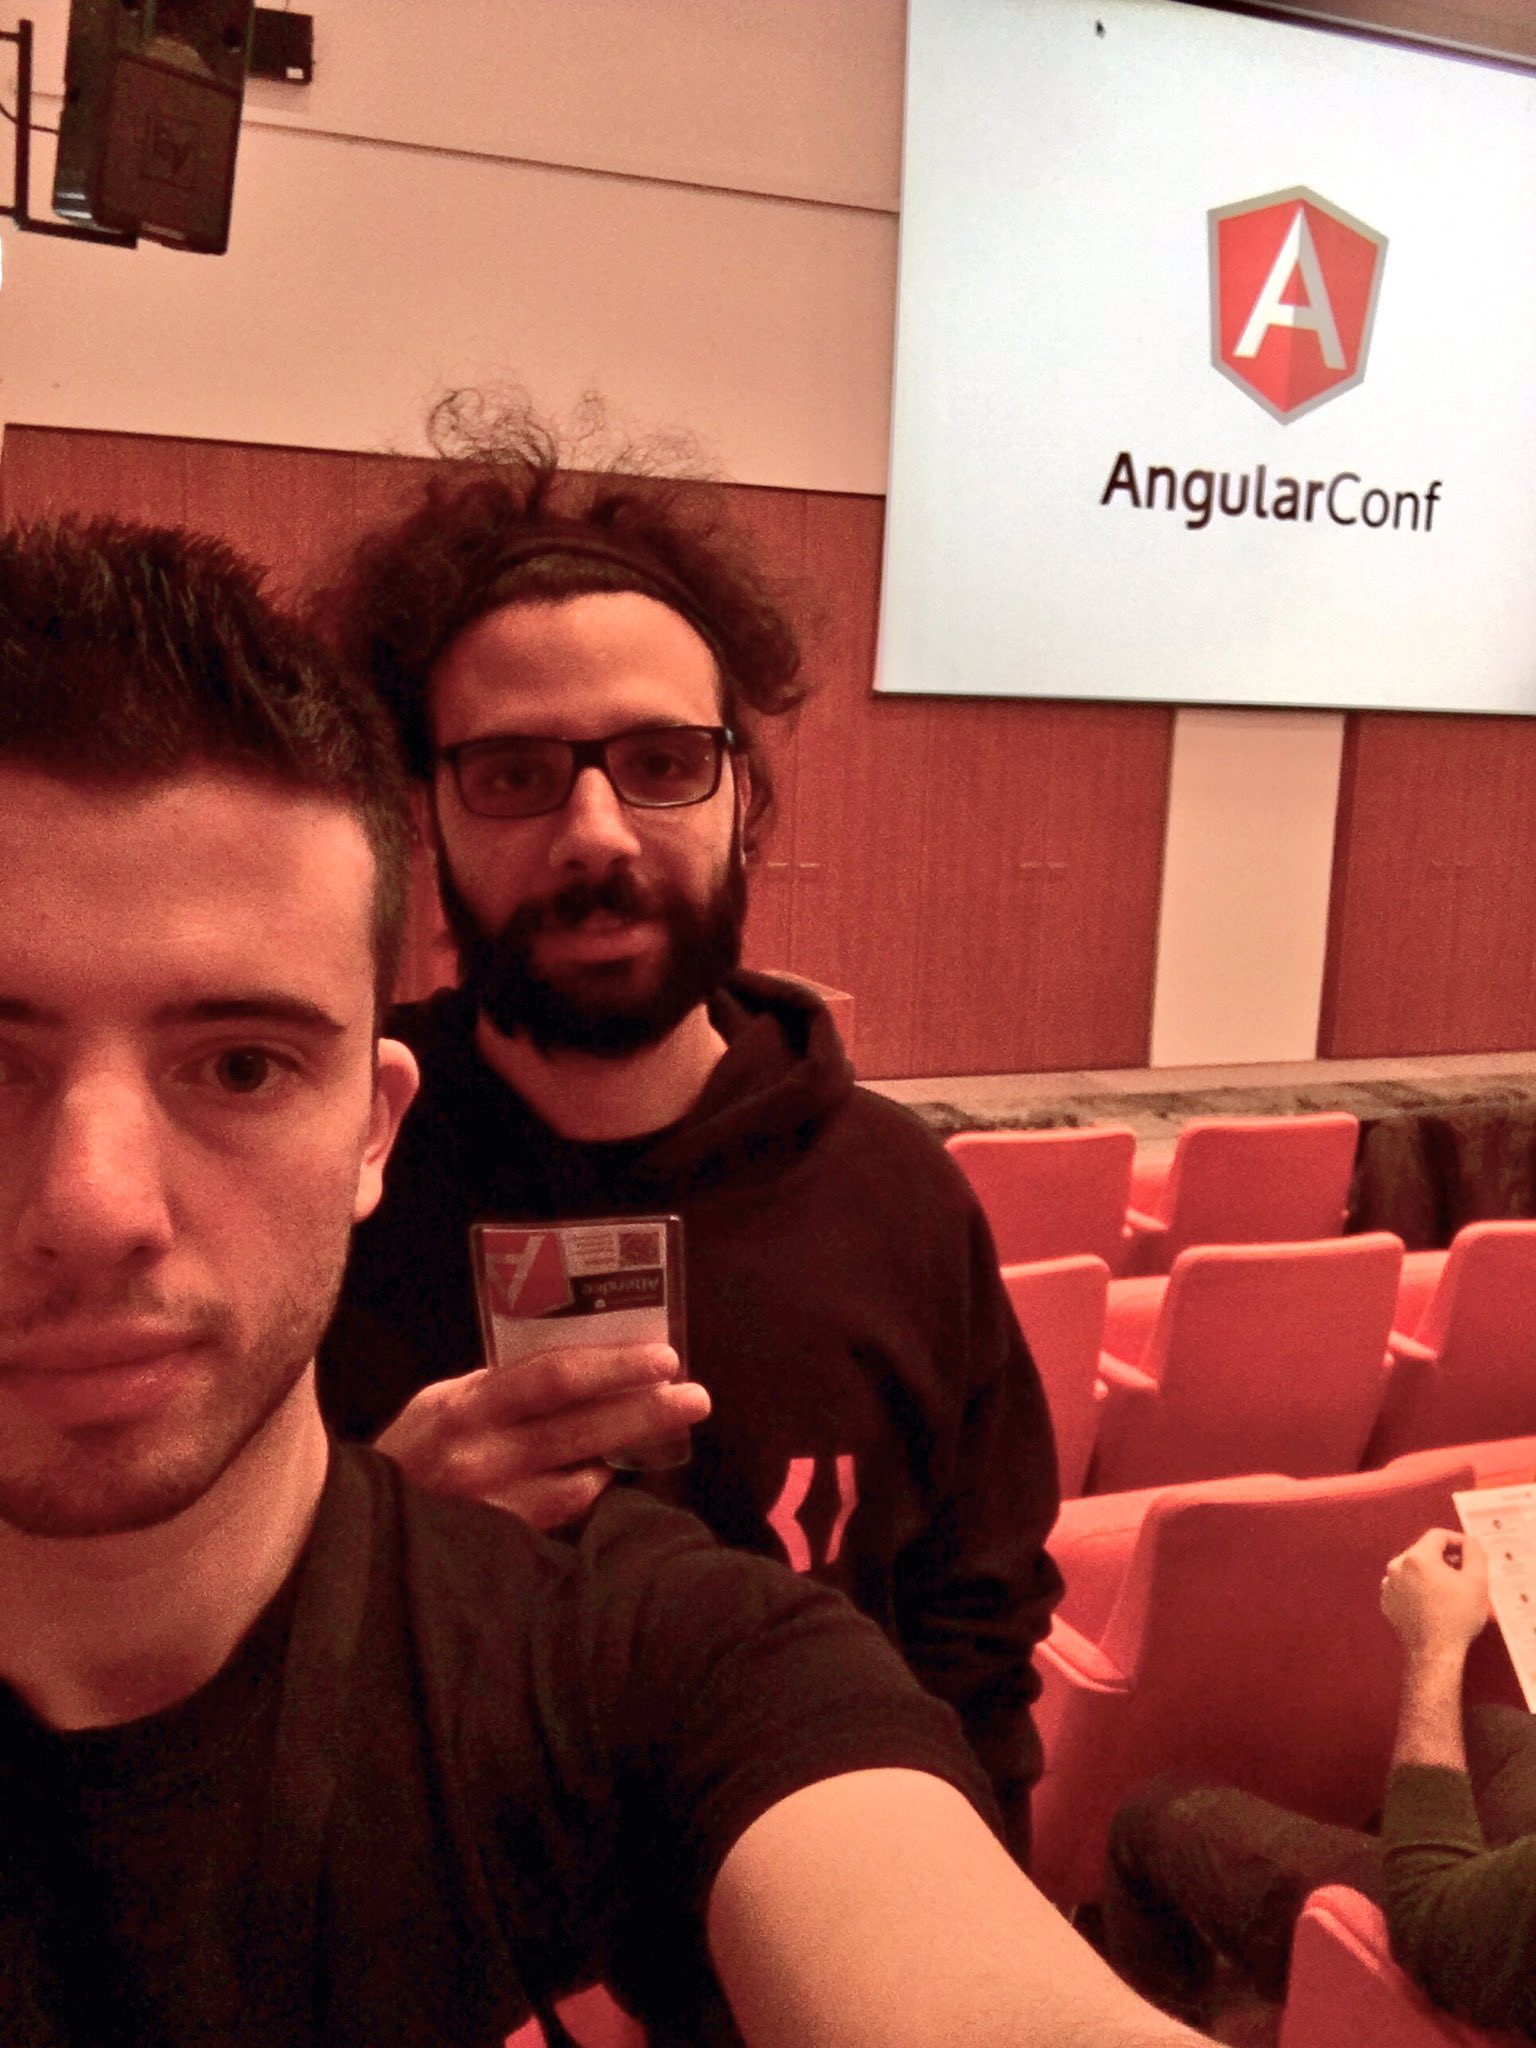 Today our devs @gianfra__ and @Mattia_Zanella are at @_CloudConf_  #javascript #angular #angularjs #angular2 #angularconf16 https://t.co/6OjEKjdtFY